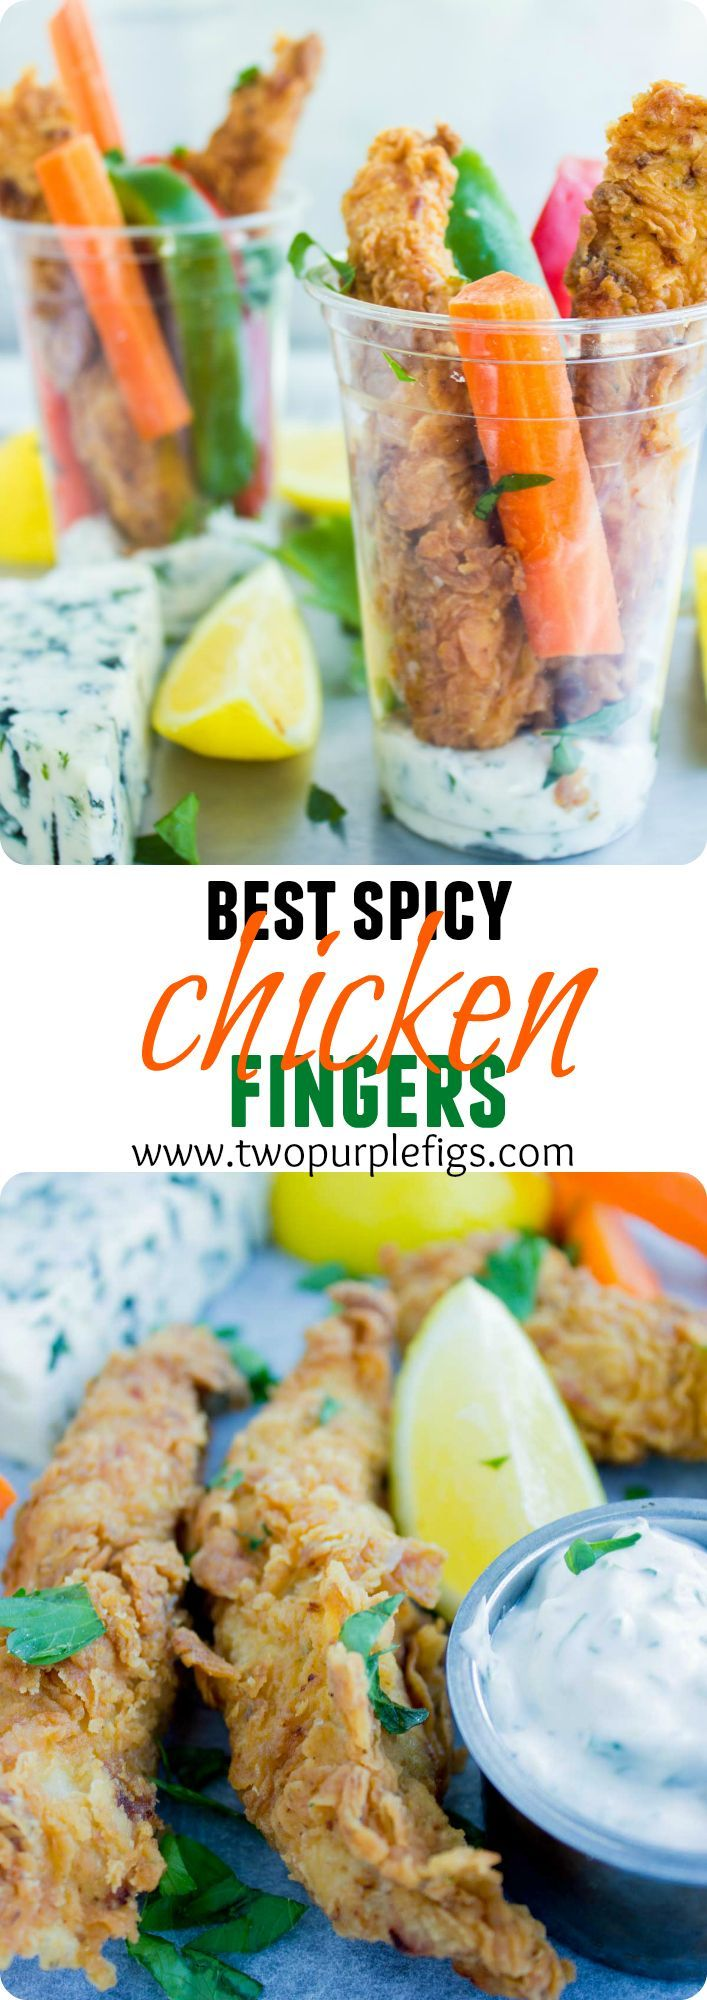 Fried Chicken Fingers recipe is the REAL DEAL best spicy chicken fingers ever--fried till perfection! With a cool sour cream blue cheese dip--a favorite for kids and grown ups! www.twopurplefigs.com